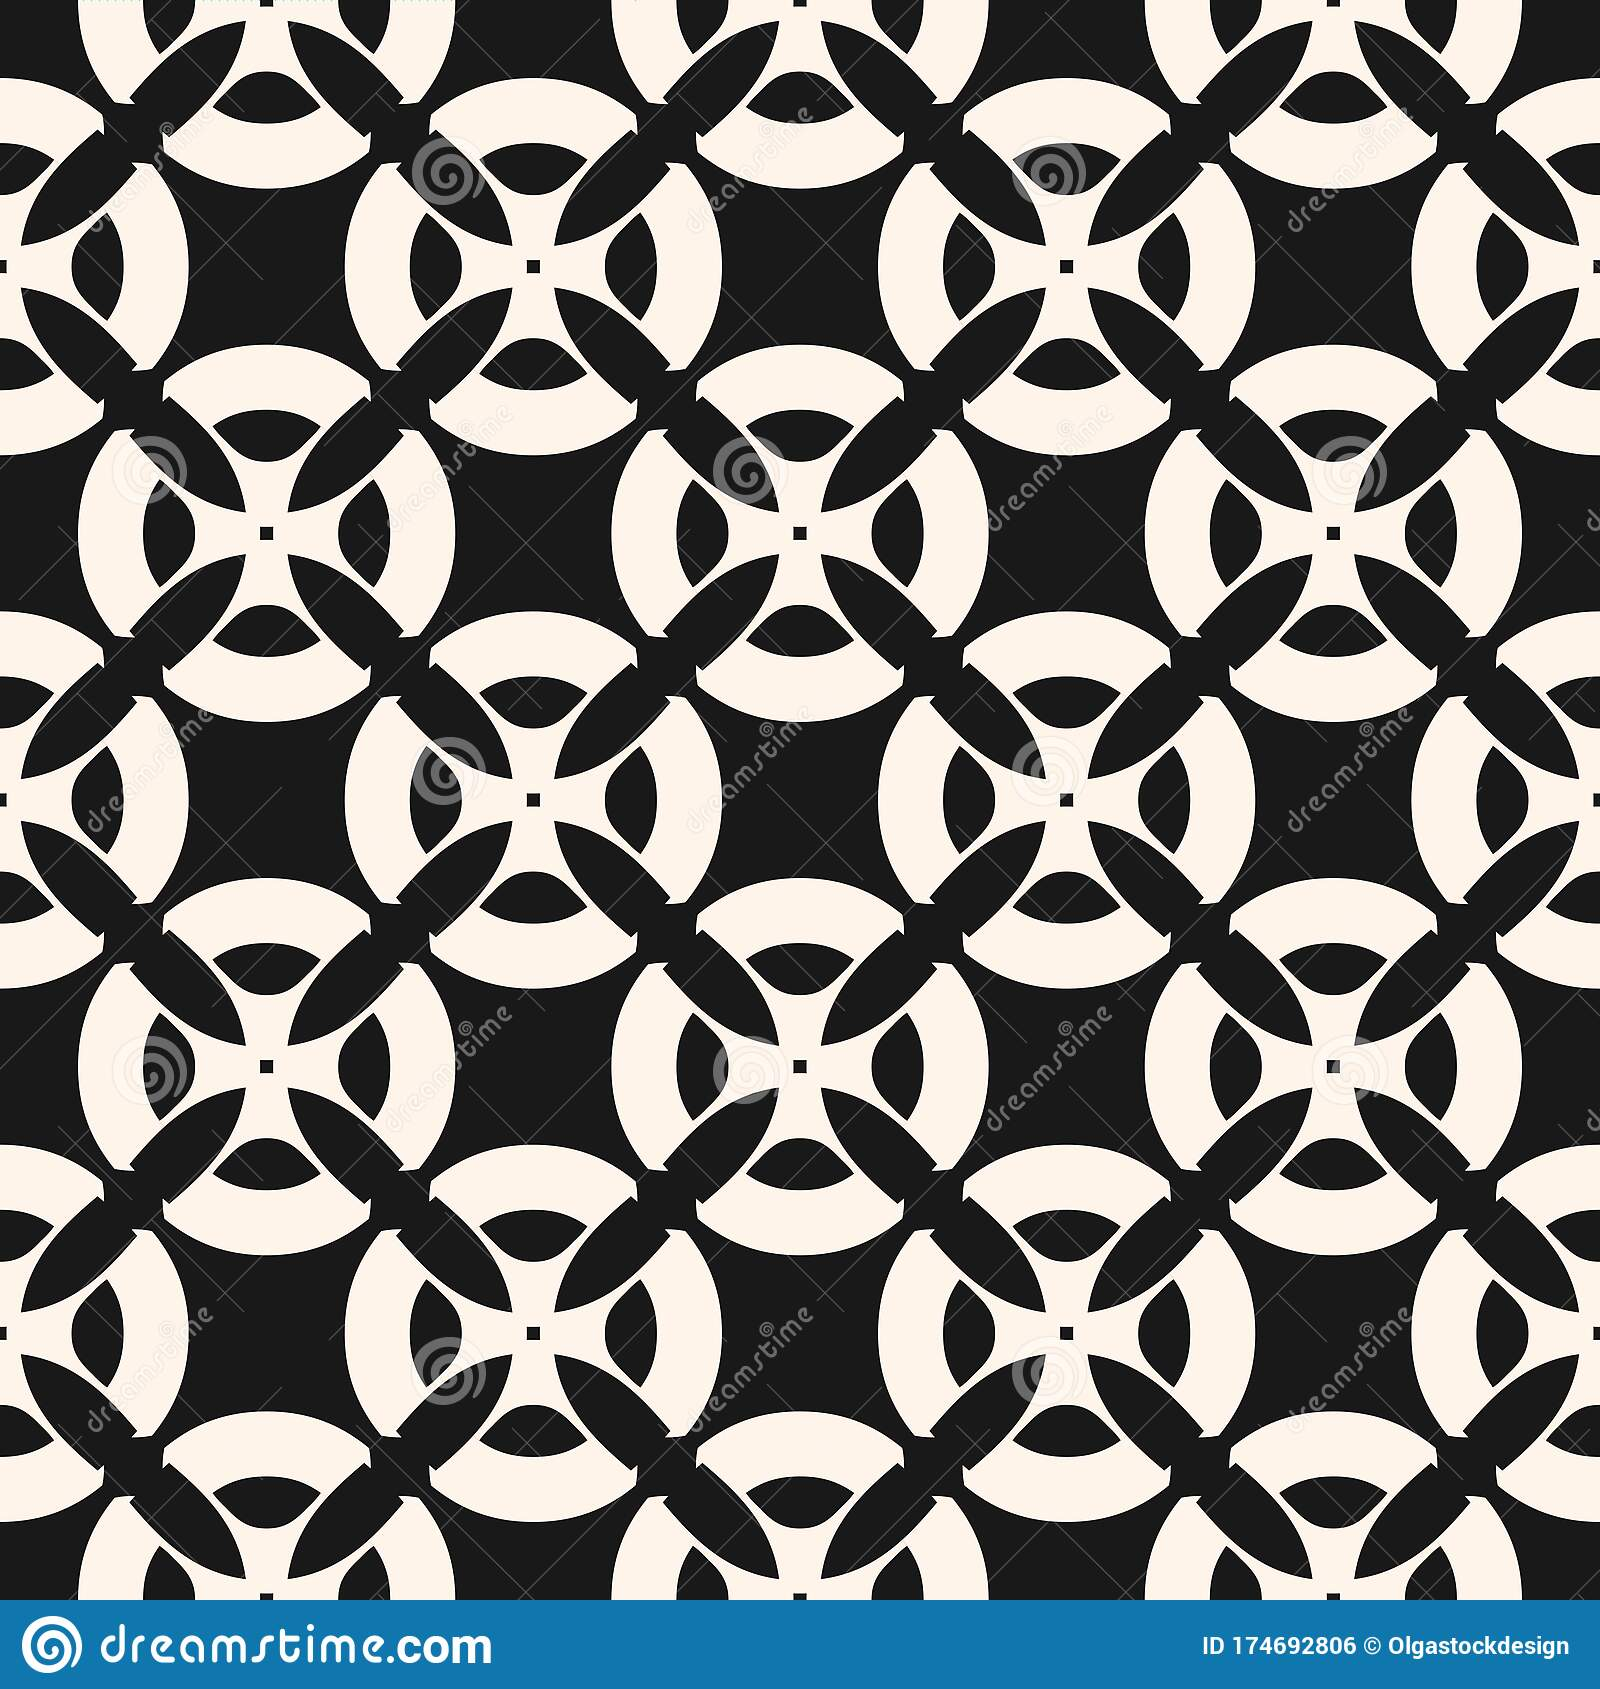 https www dreamstime com seamless pattern mosaic tiles black white geometric floral ornament vector monochrome abstract background texture flower image174692806